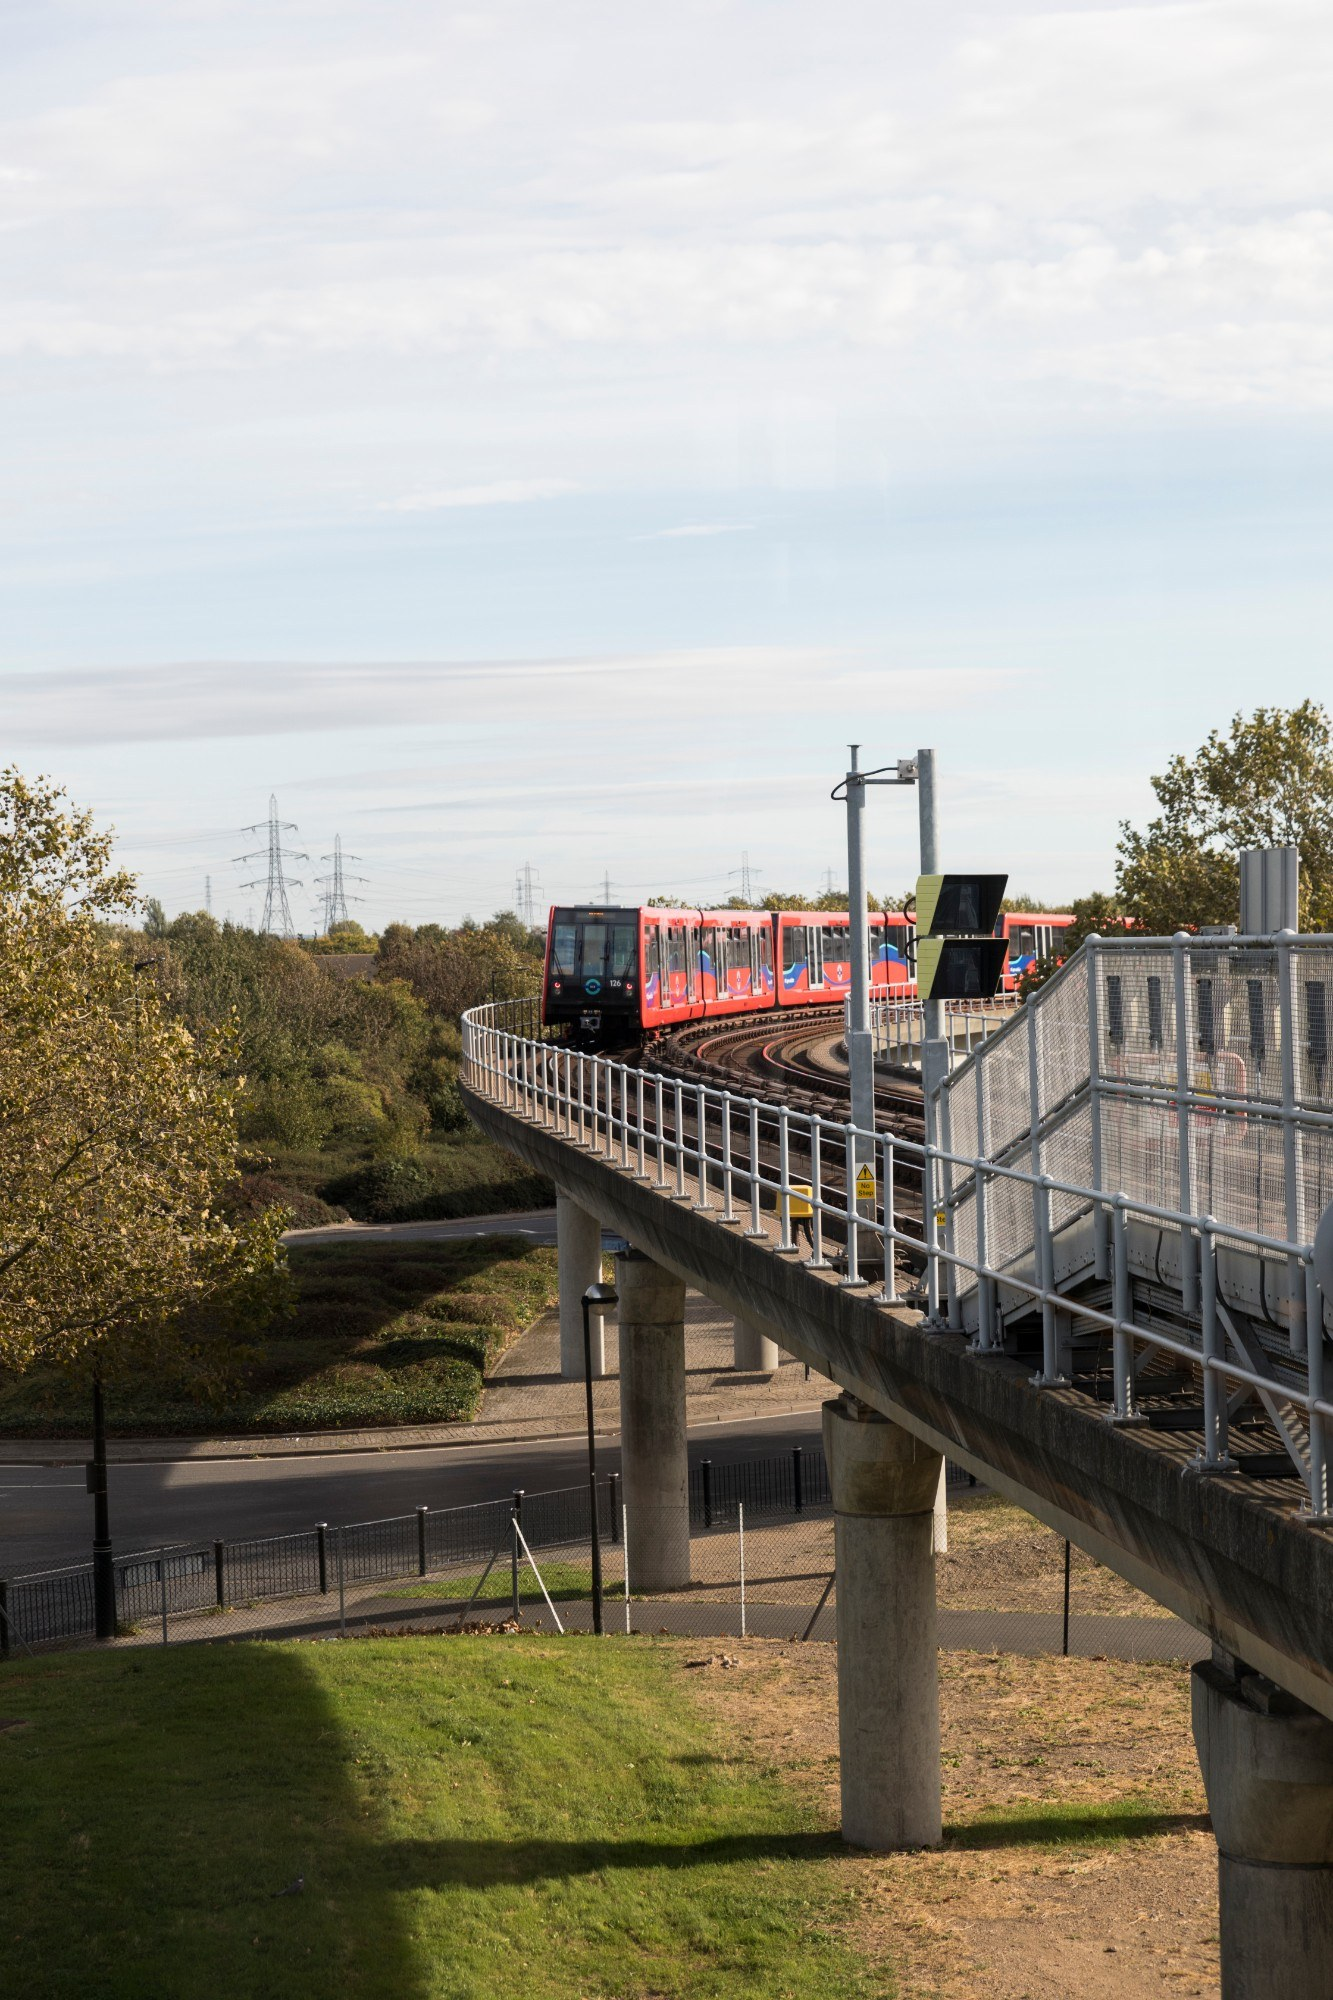 DLR train moving along tracks in the Royal Docks